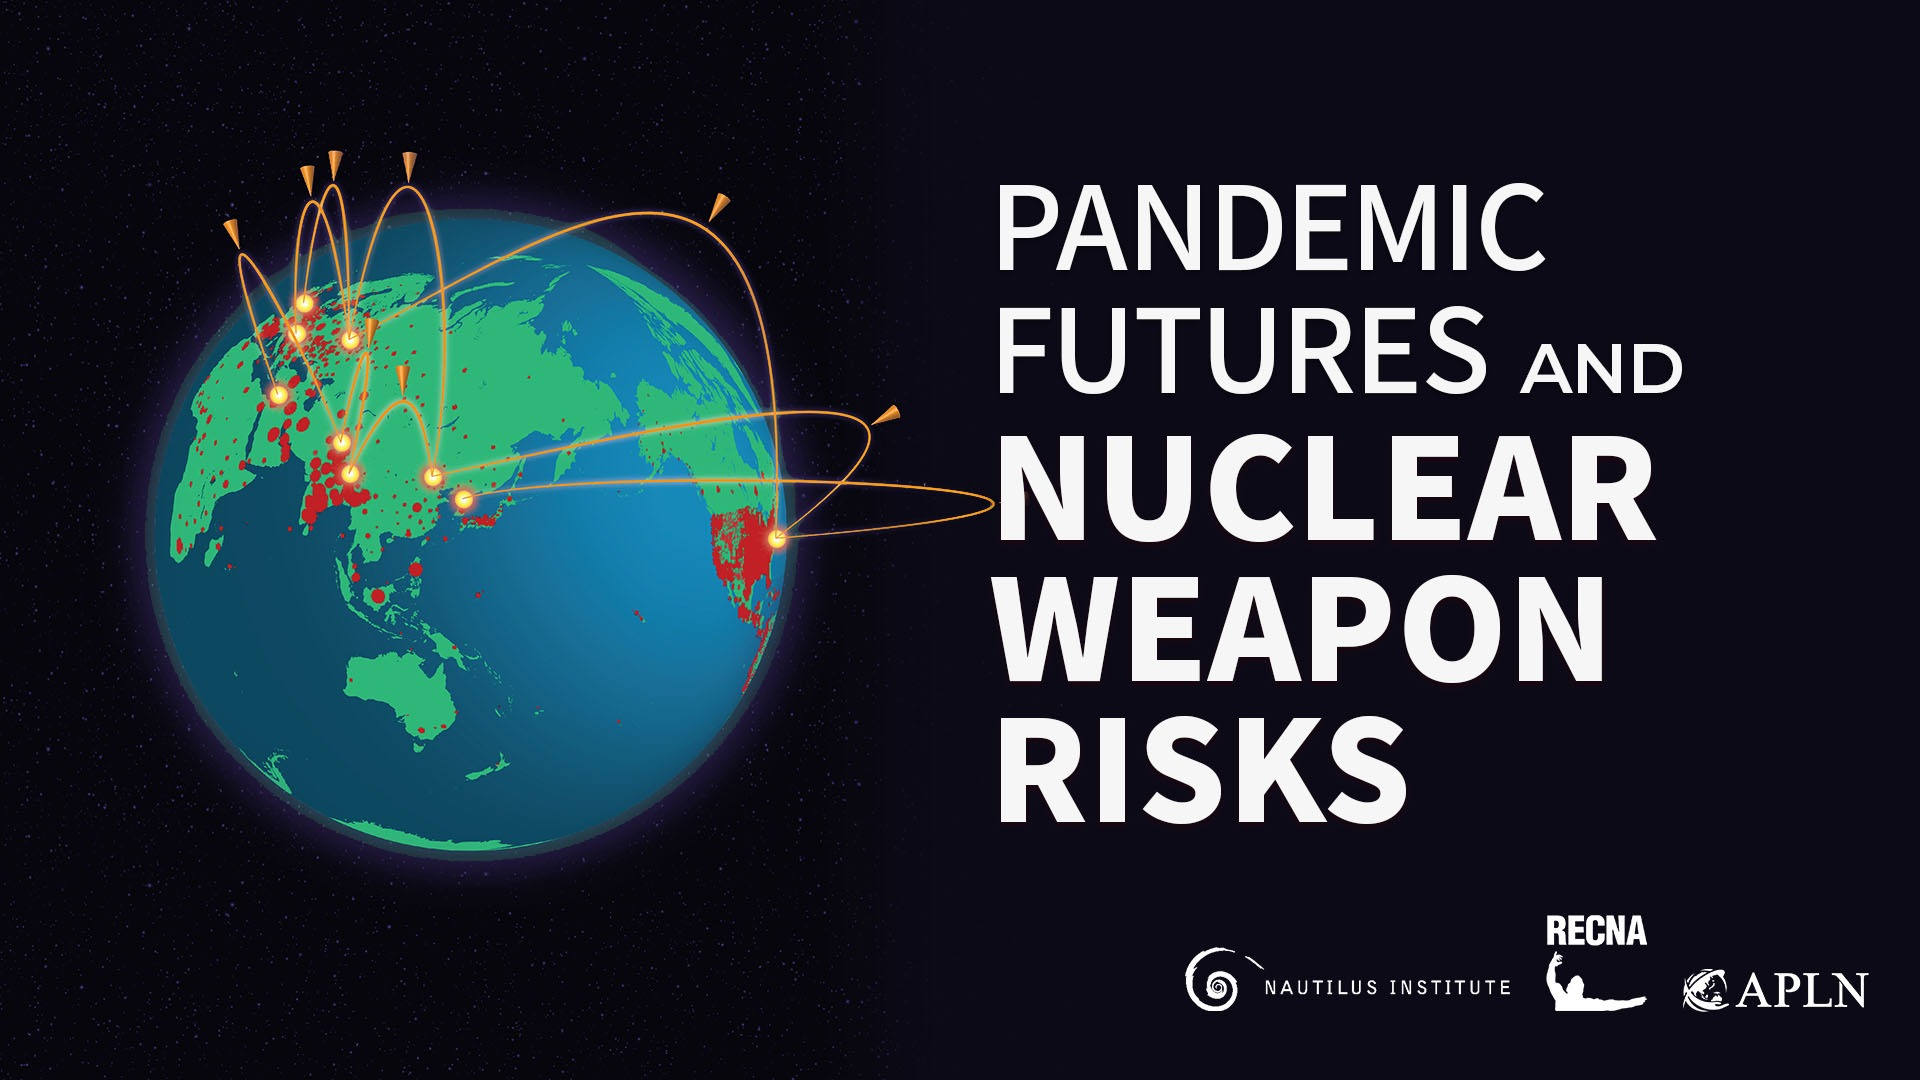 Video Analysis - Pandemic Futures and Nuclear Weapons Risks